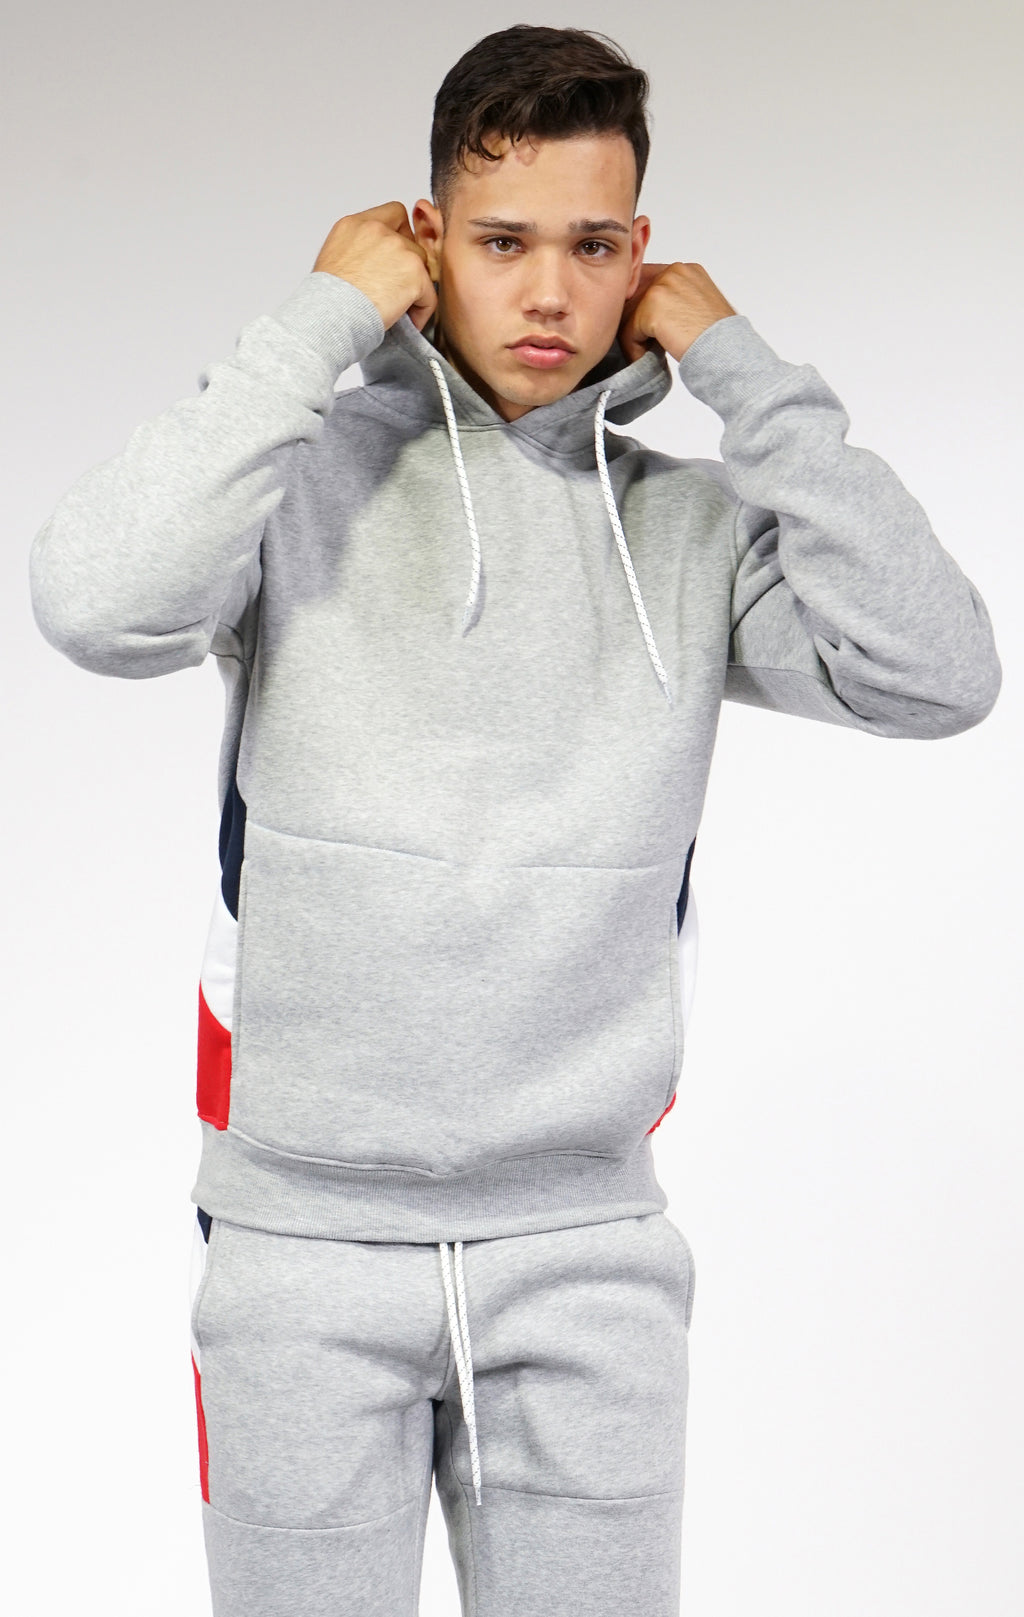 Aao Fashion Mens Fleece Hoody W/ Body Cut